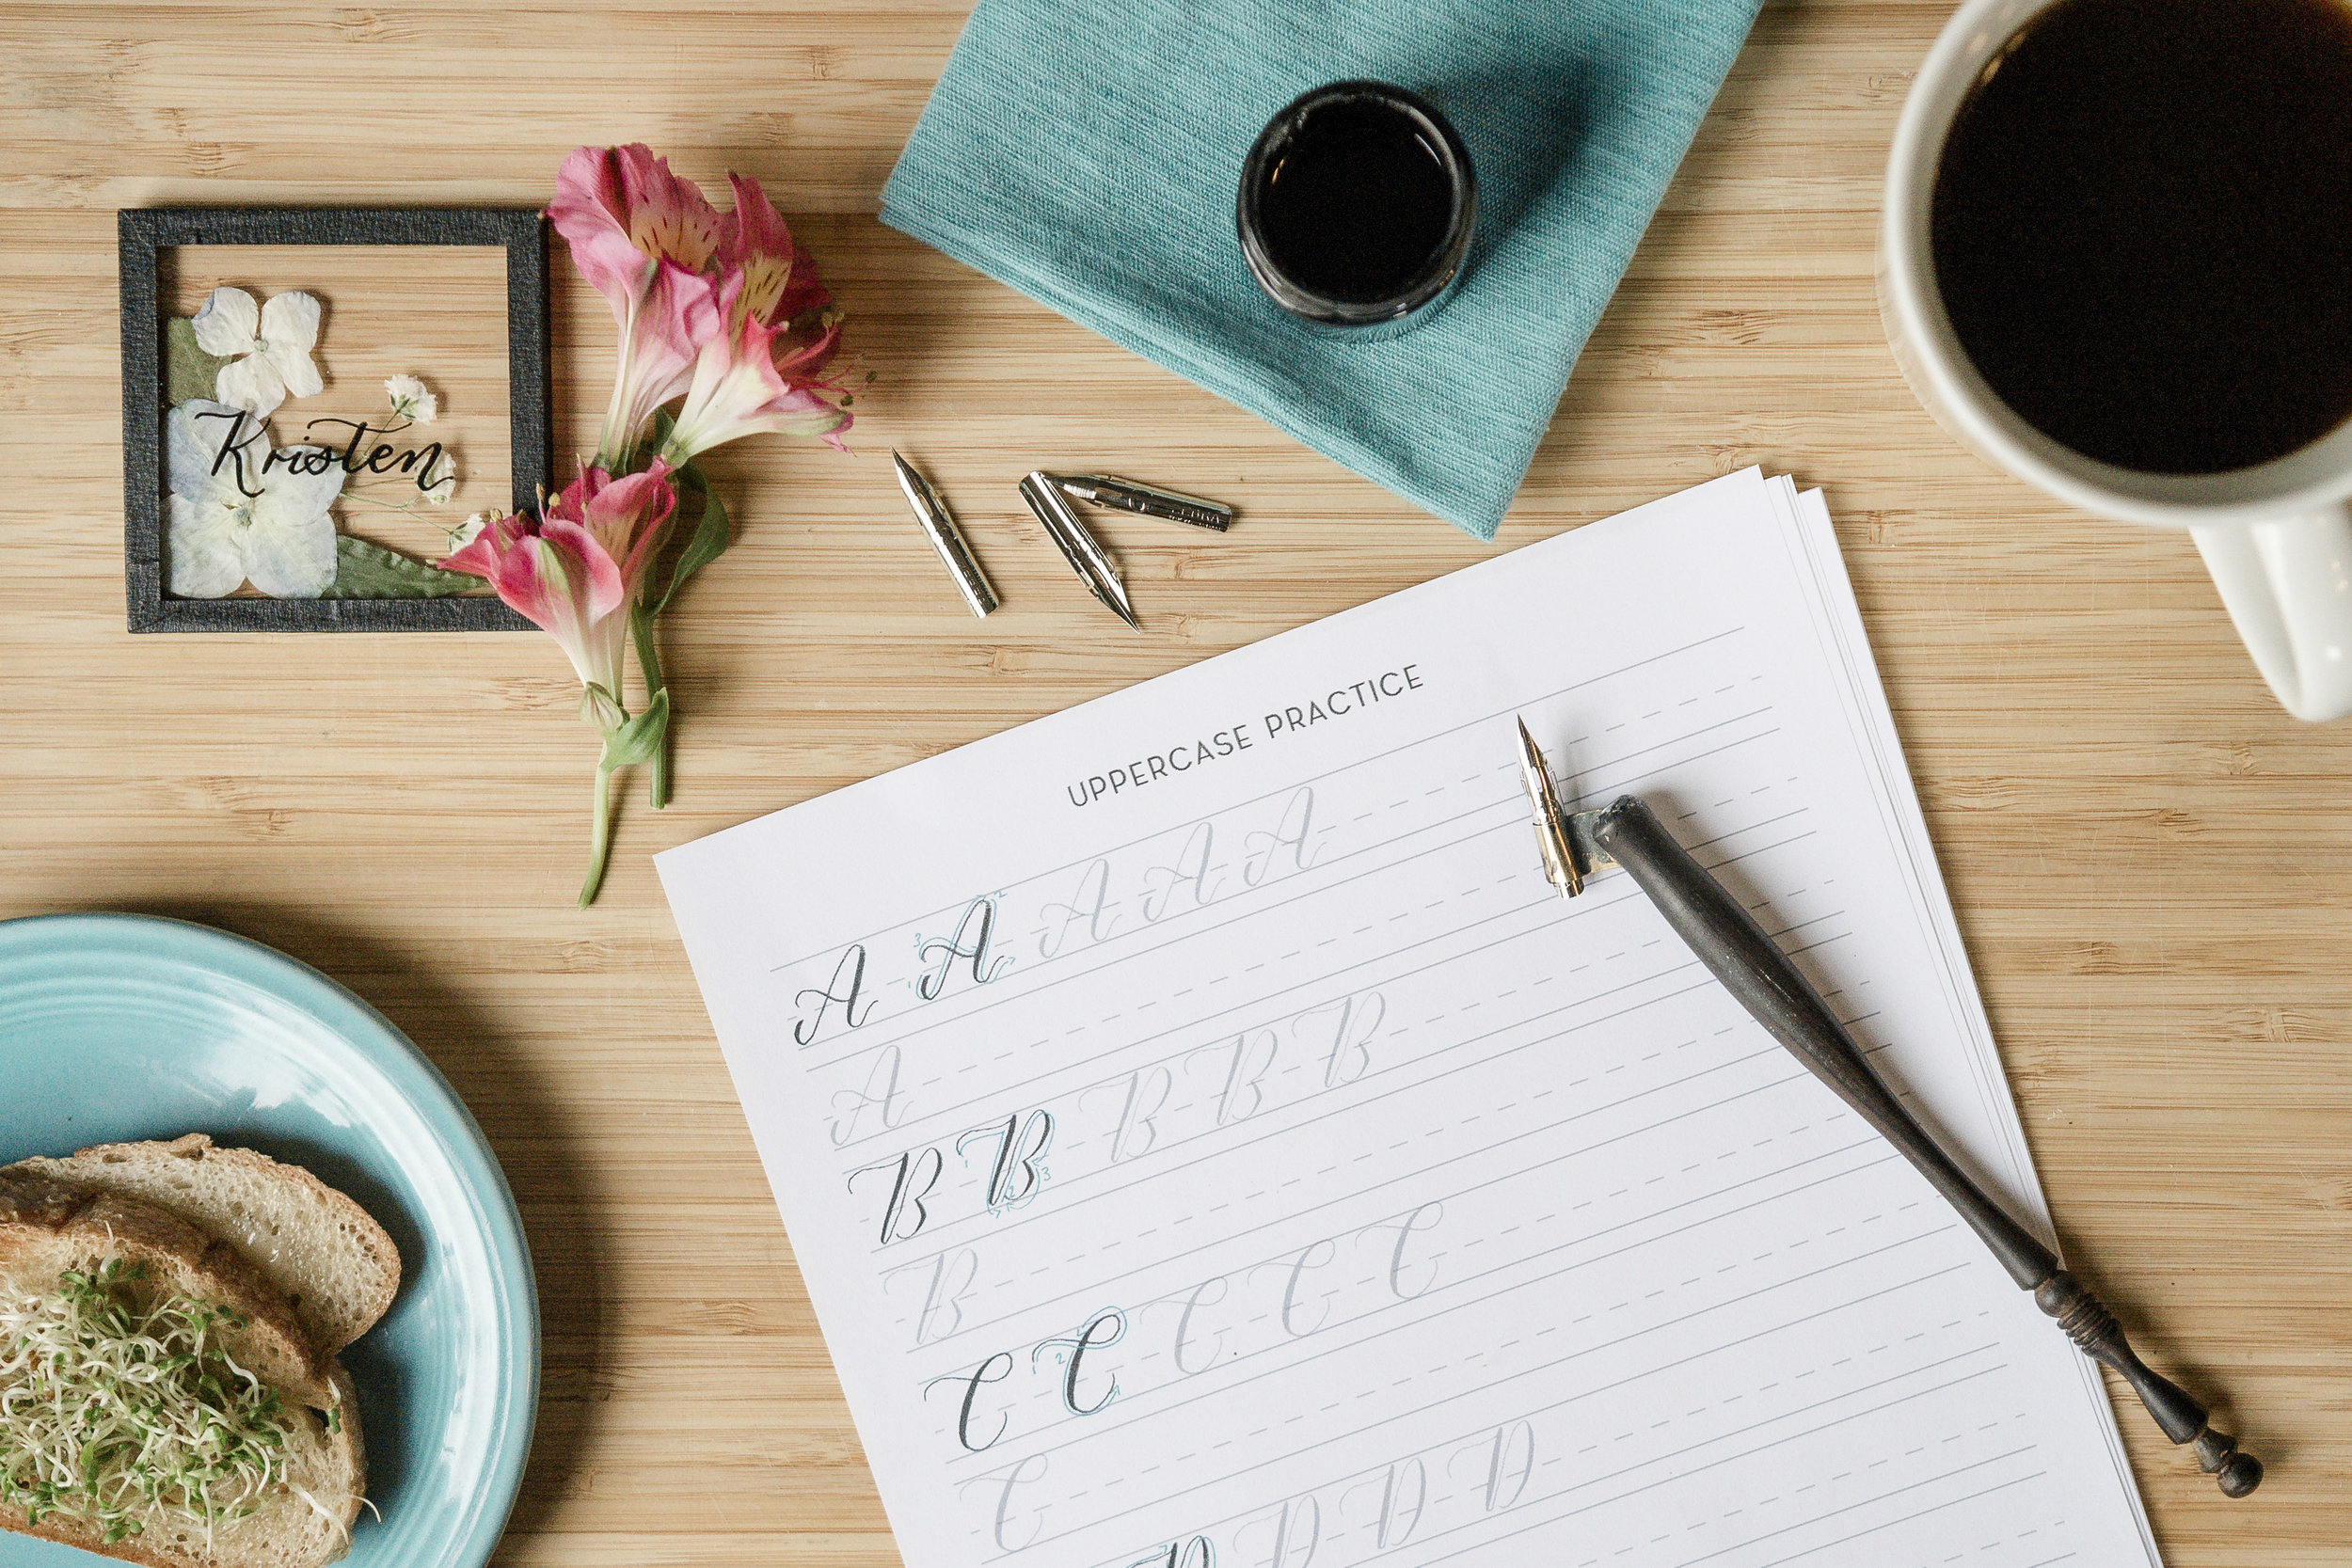 Learn calligraphy in Denver on June 30th, 2019